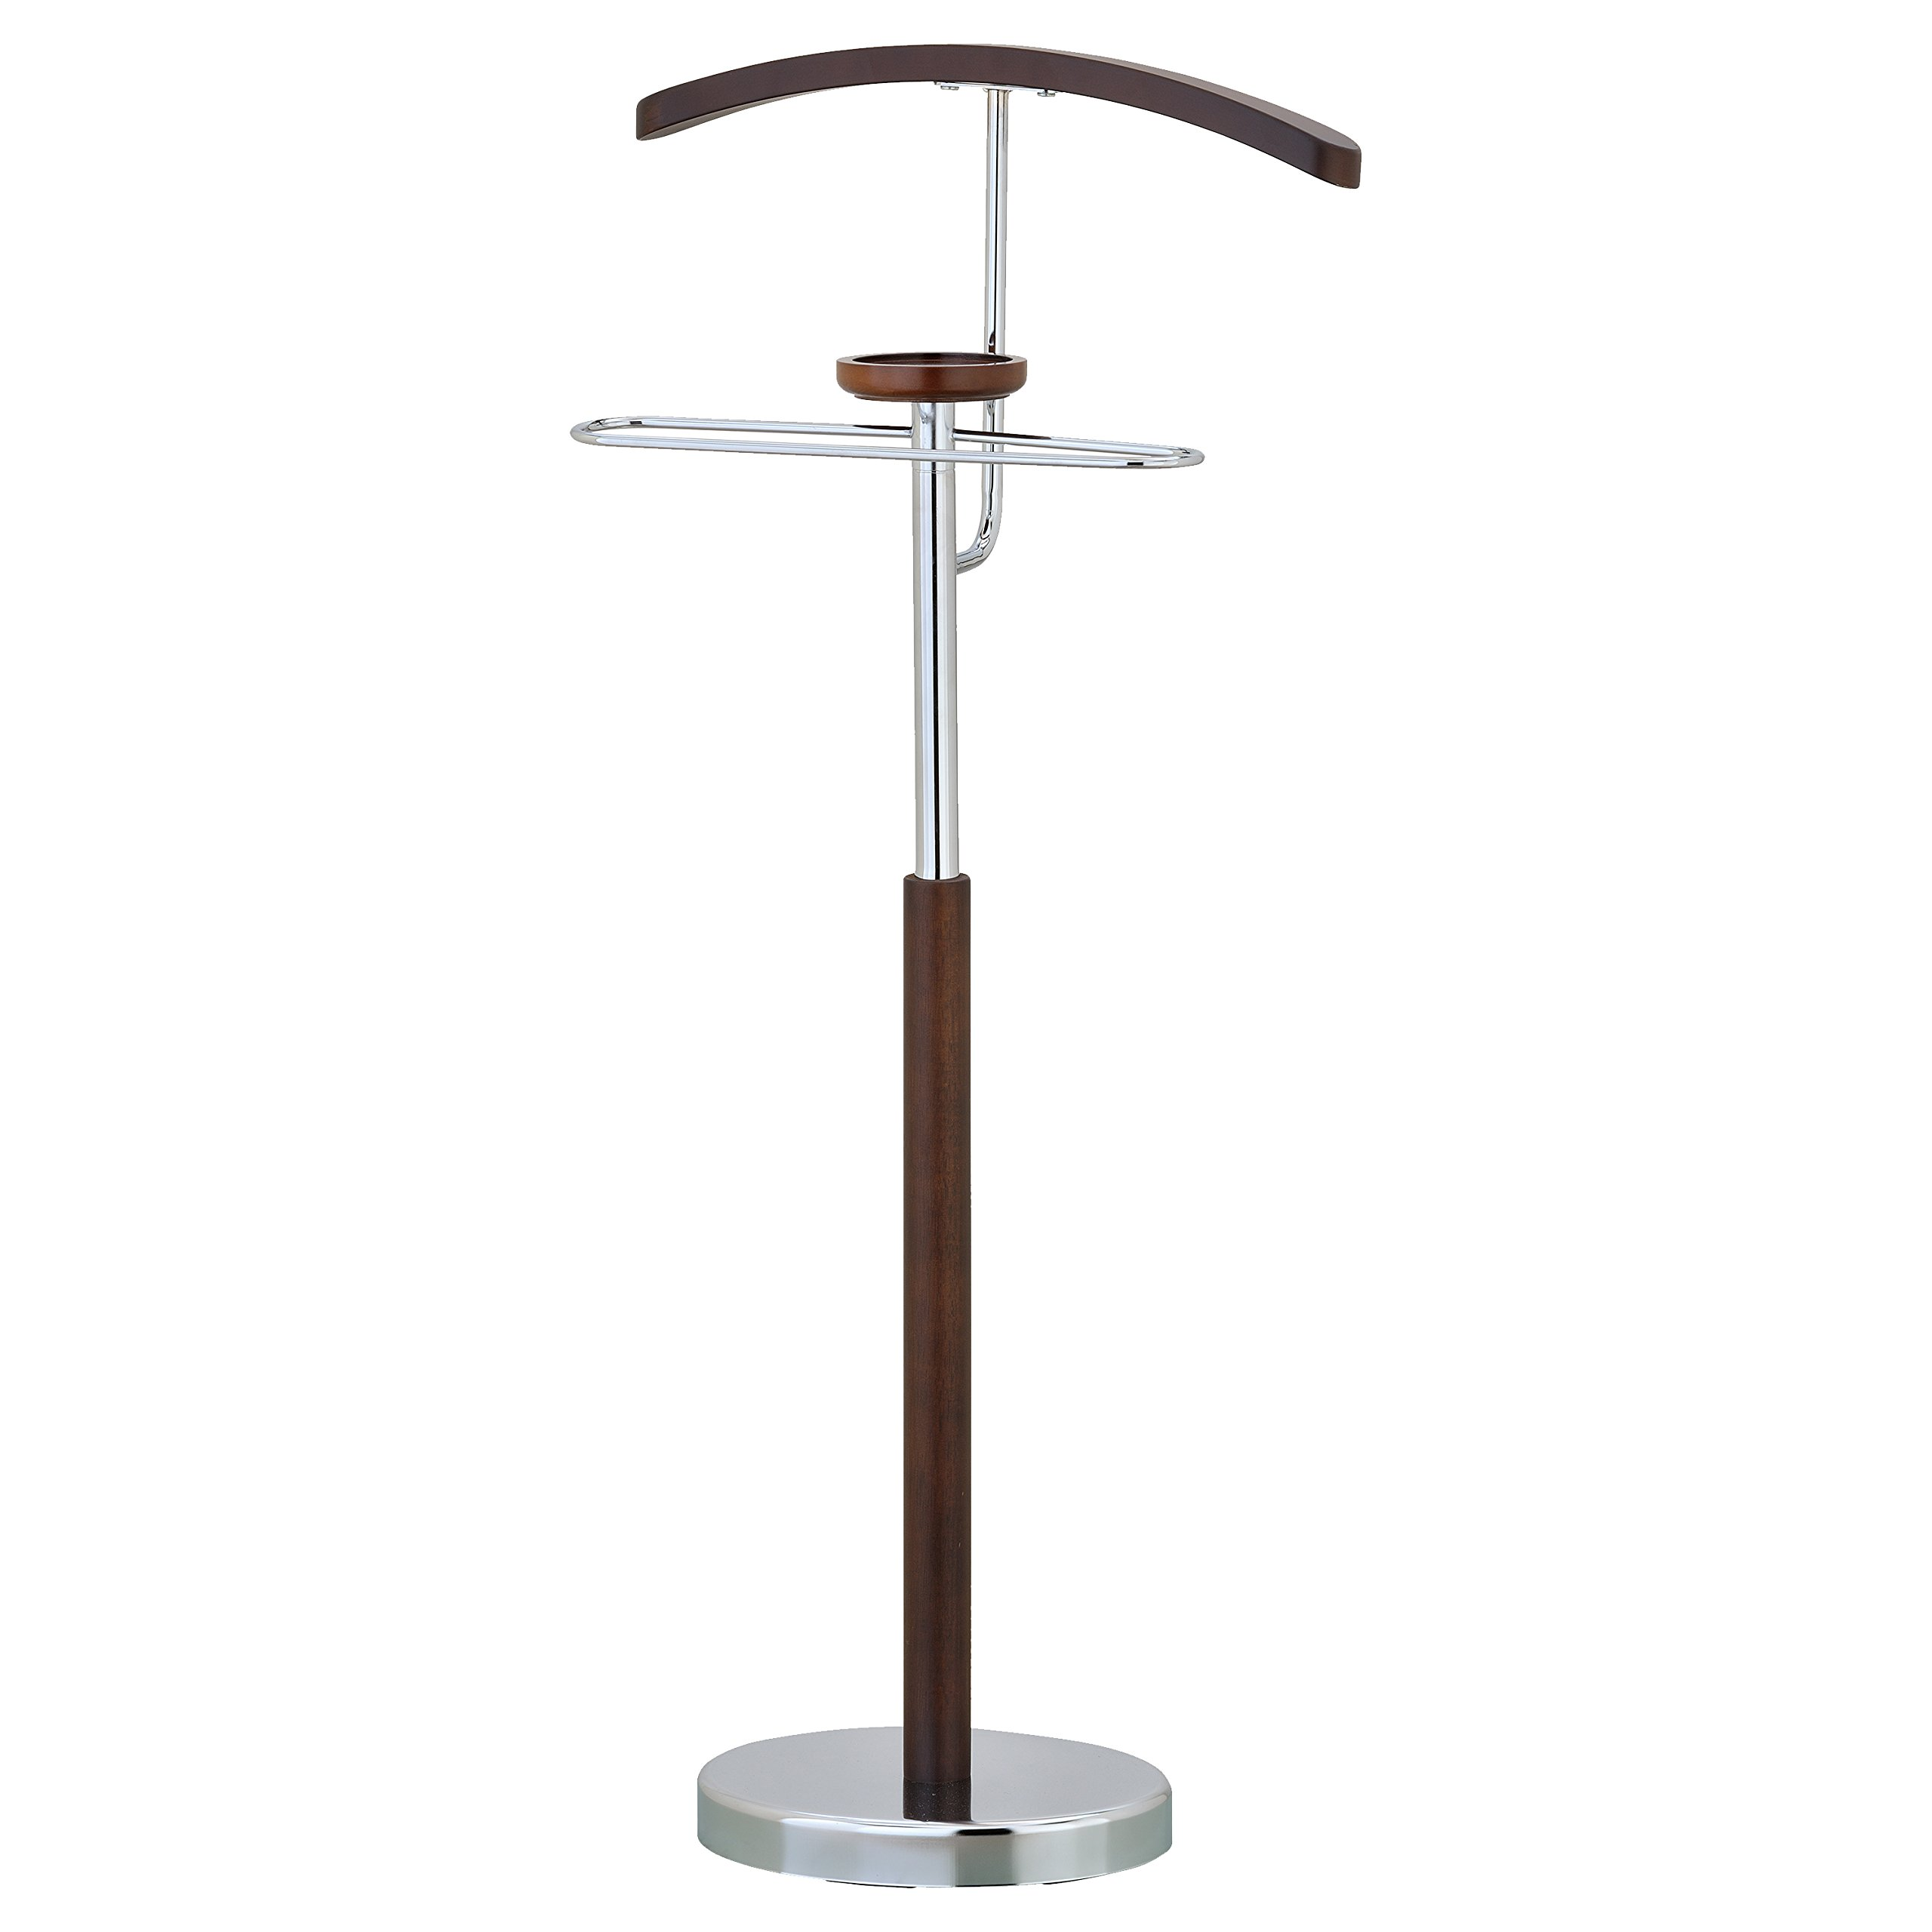 Deluxe Wood & Chrome Suit Valet Stand, Jacket and Pant Hanger with Accessory Dish